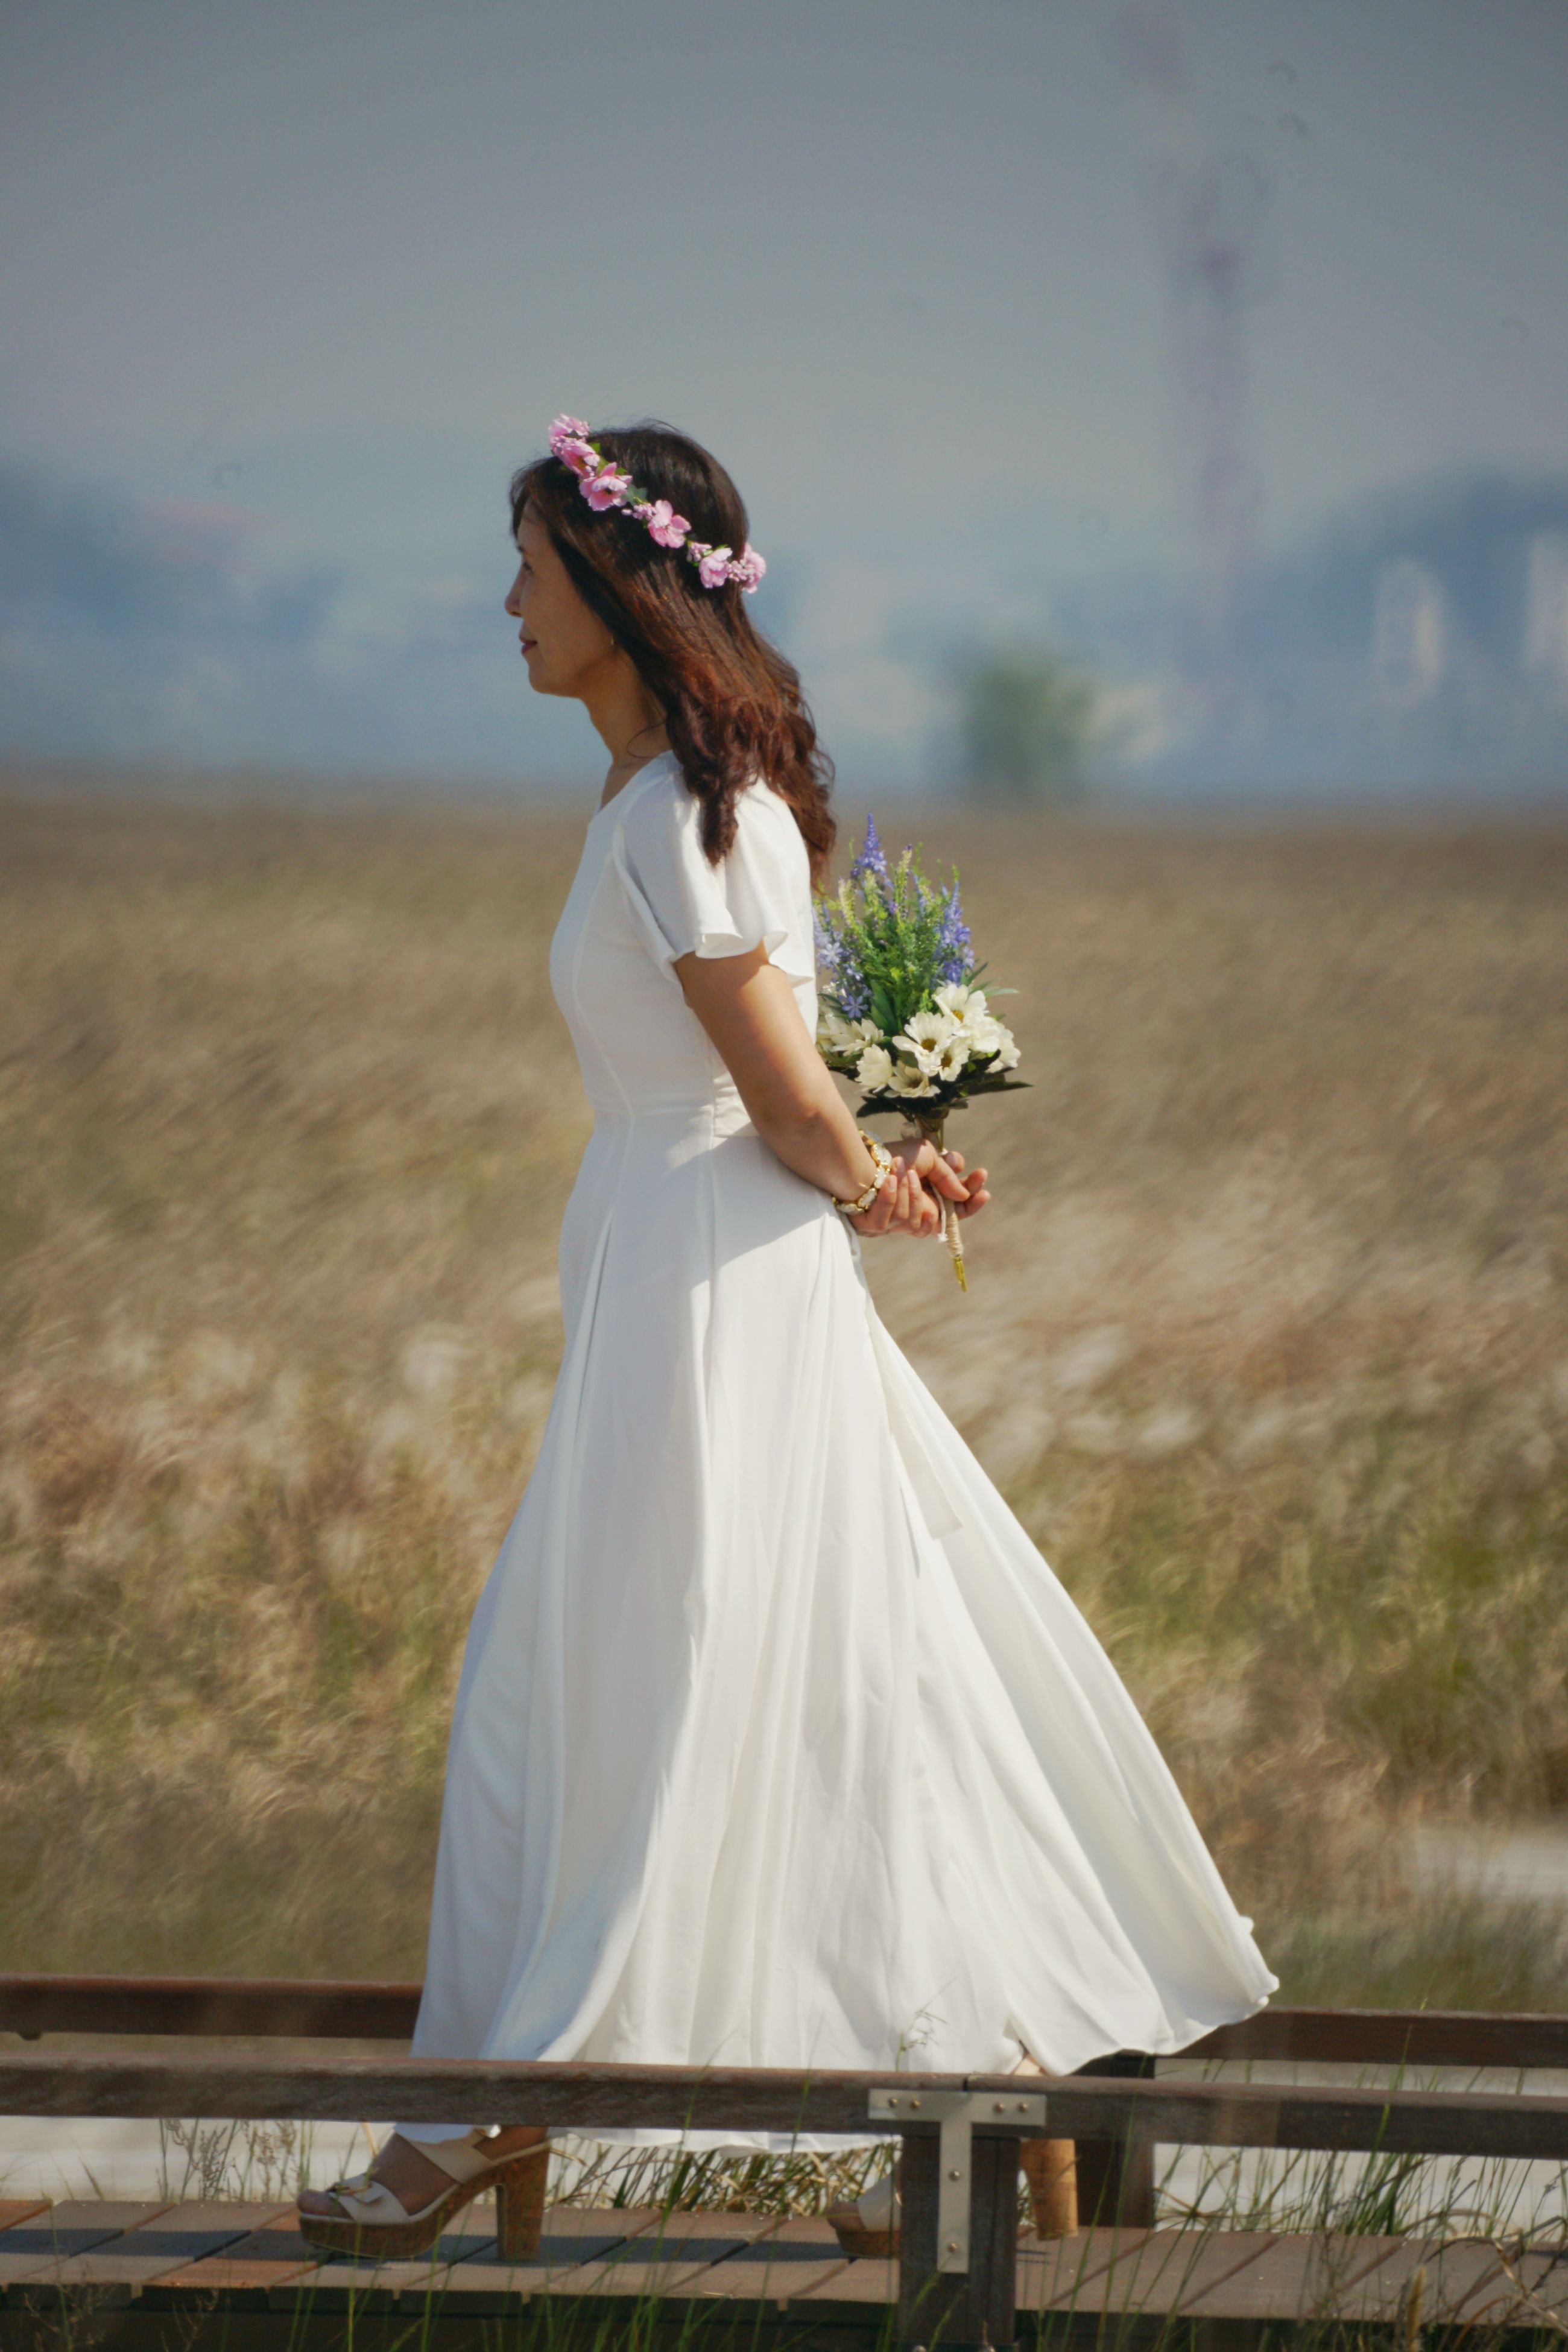 bride, wedding, women, young adult, real people, wedding dress, one person, young women, lifestyles, standing, life events, outdoors, love, sky, day, nature, leisure activity, celebration, flower, beautiful woman, beauty in nature, groom, people